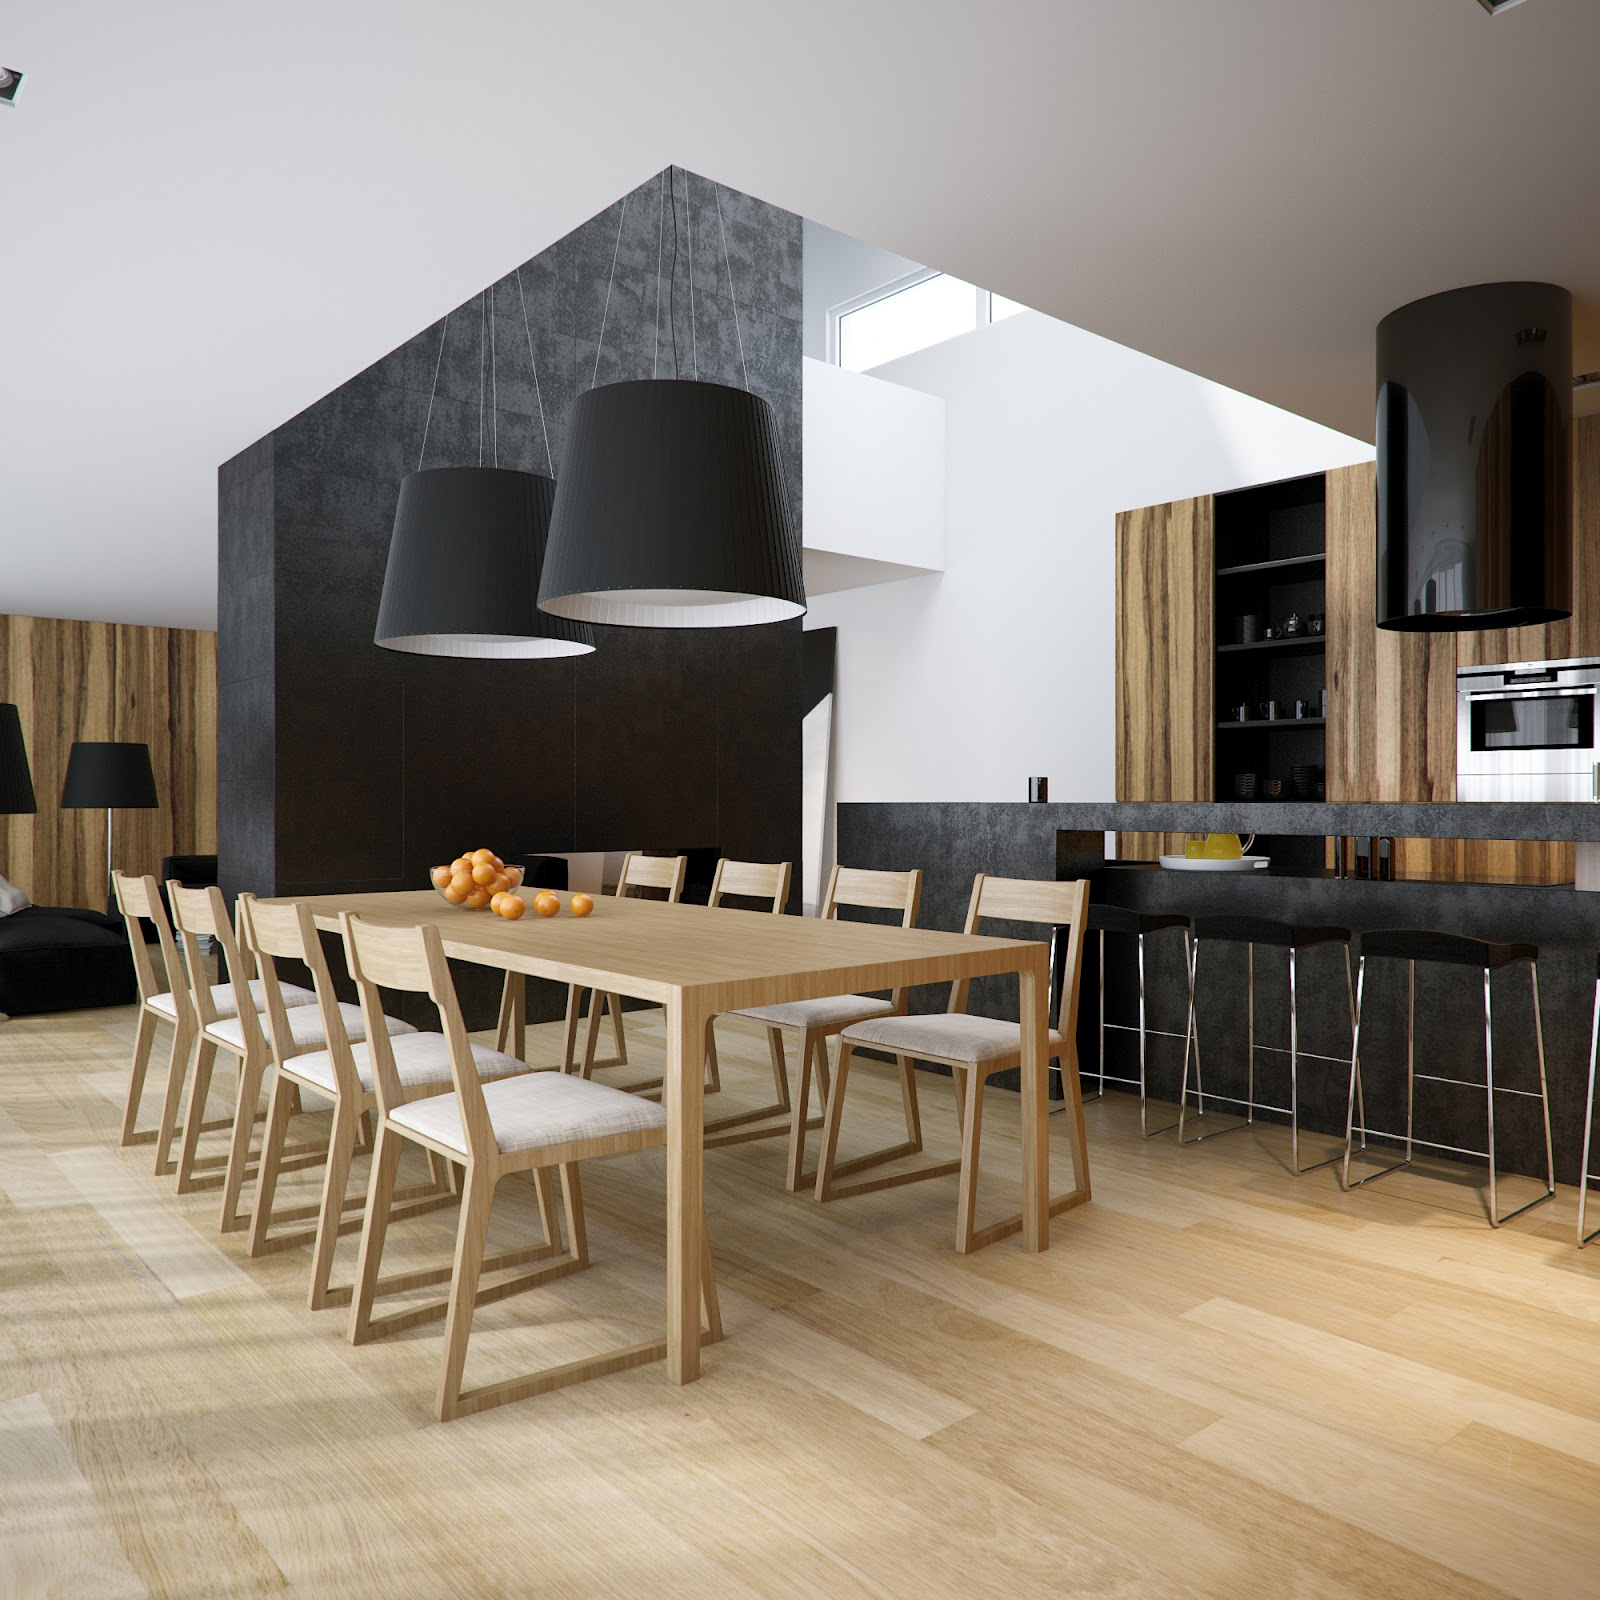 Kitchen Dining Room: Modern Minimalist Black And White Lofts